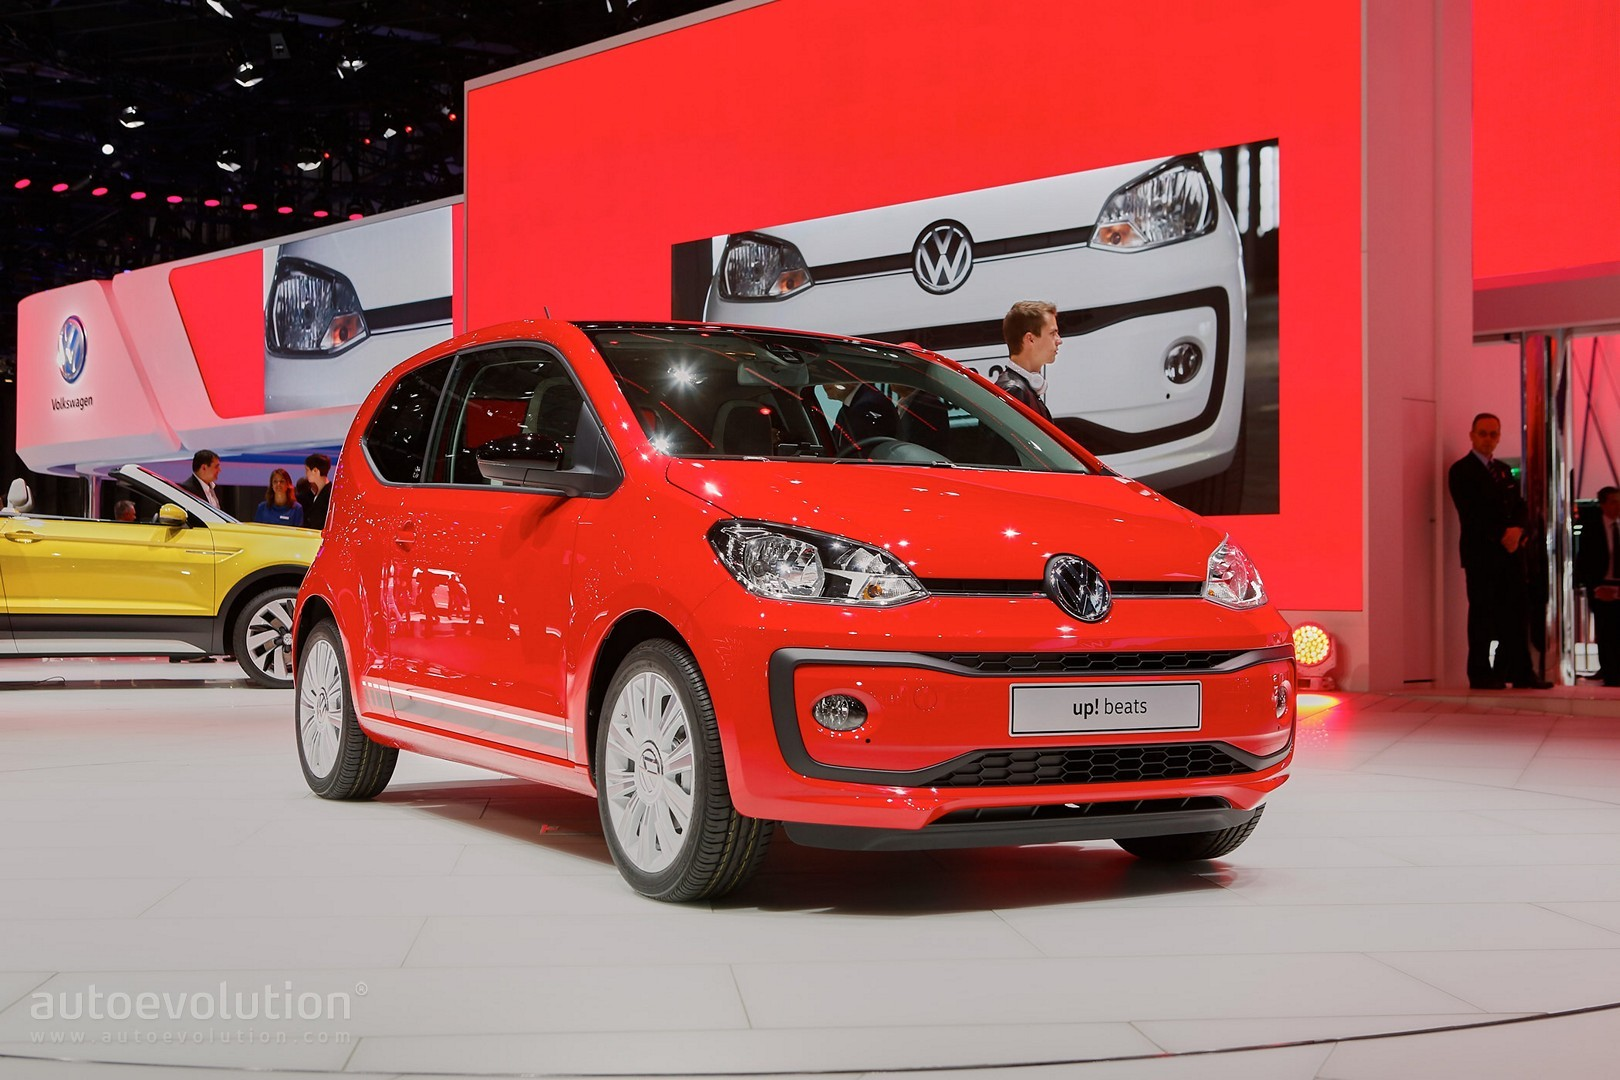 Vw Up Facelift Coming To Brazil Next February As Model on Vw 1 2 Tsi Engine